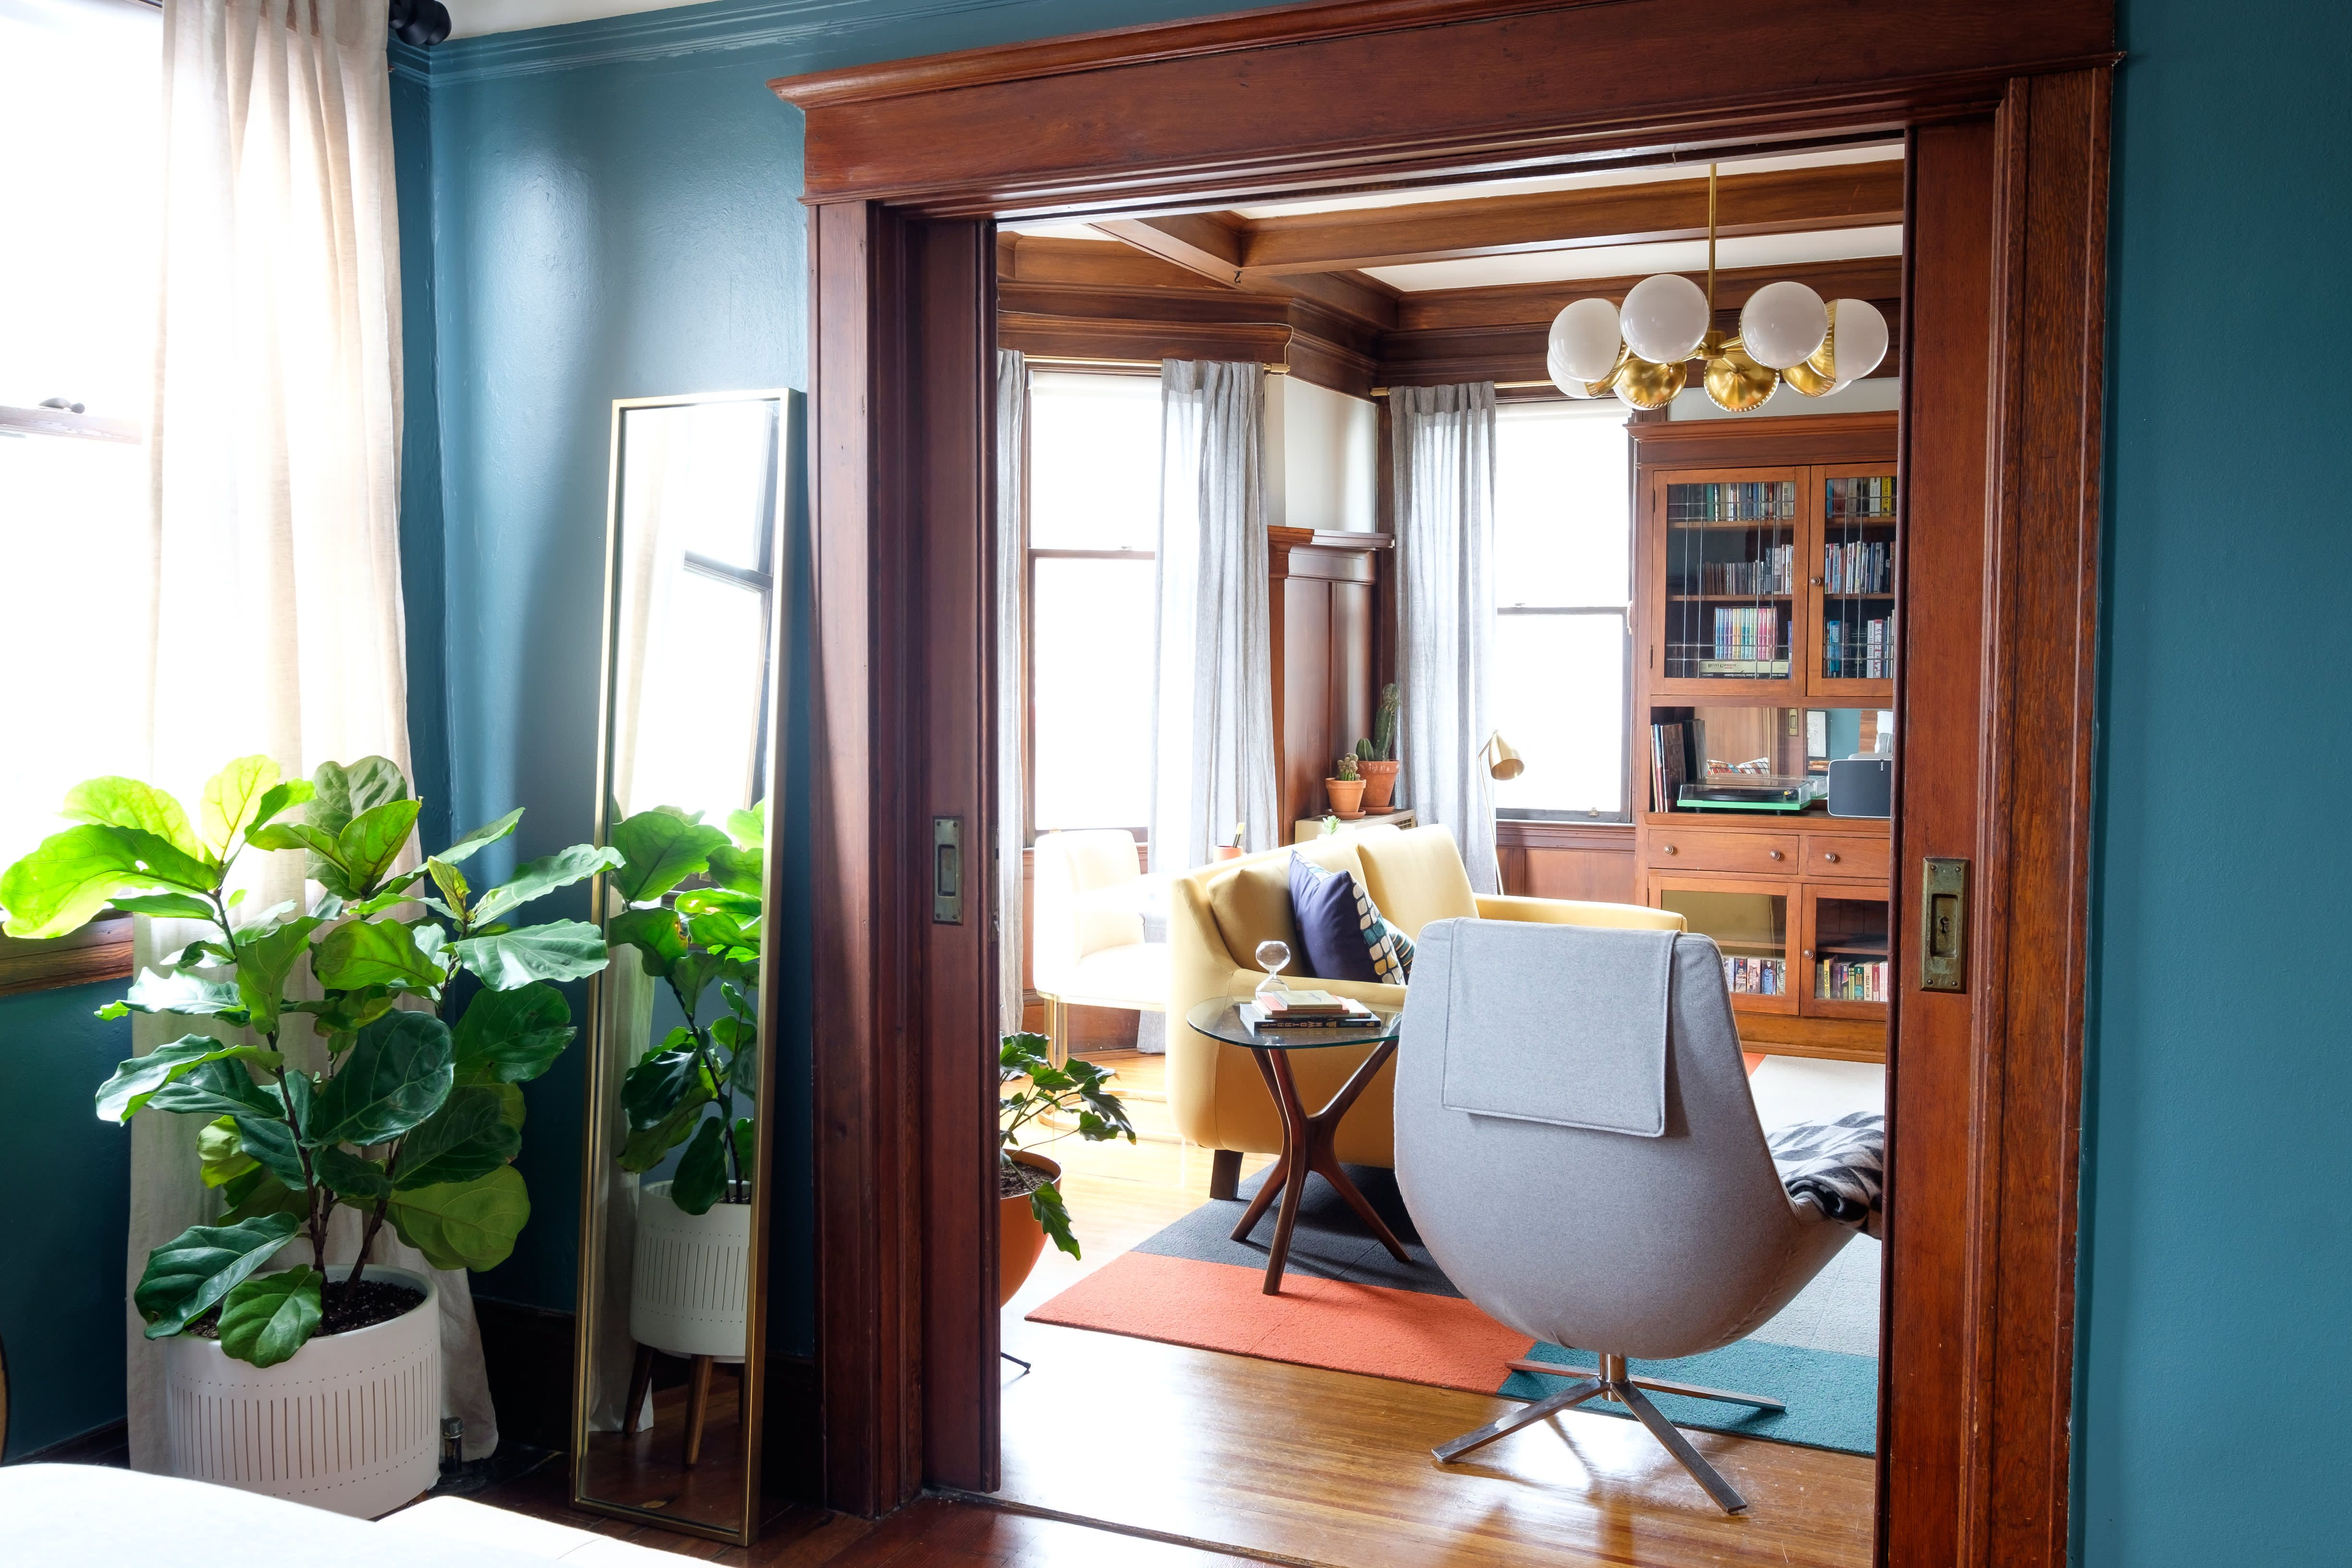 A Small San Francisco Rental Apartment Is Full of Warmth